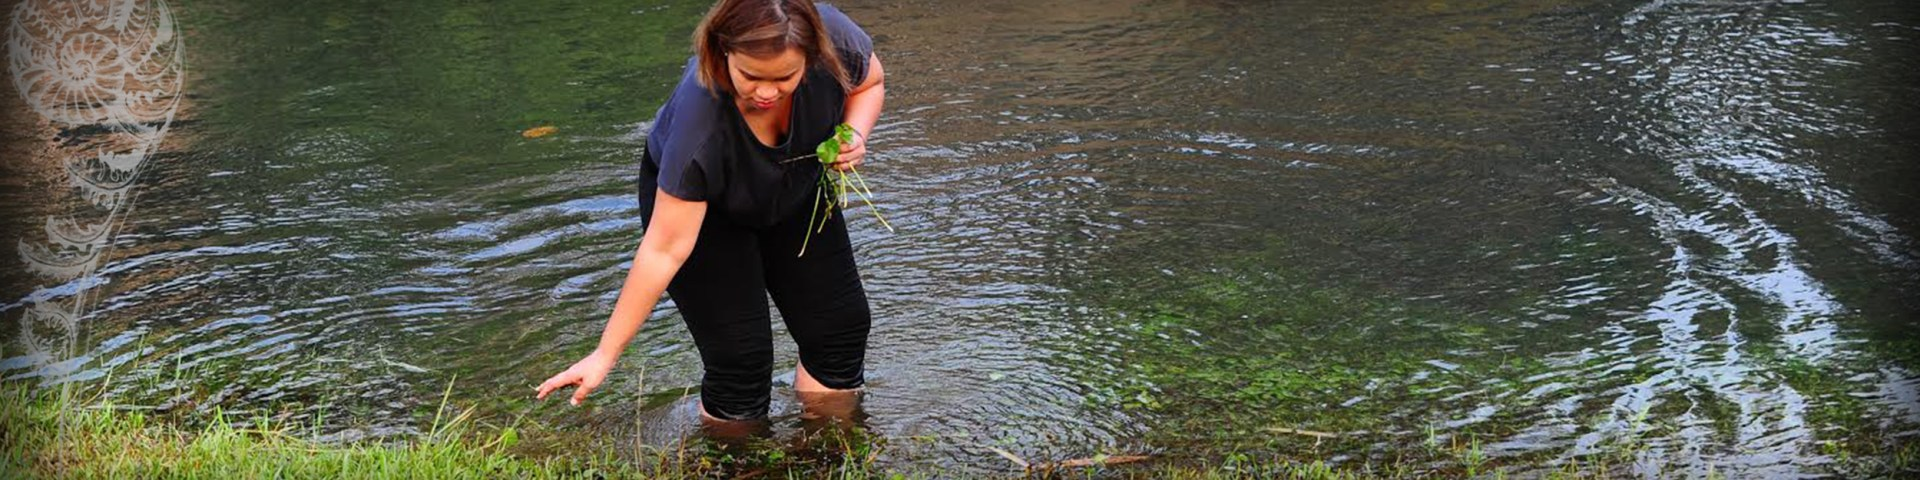 Header - Ingredients - Rivers - Foraging- Chef Bee Satongun - Traditional Thai Food